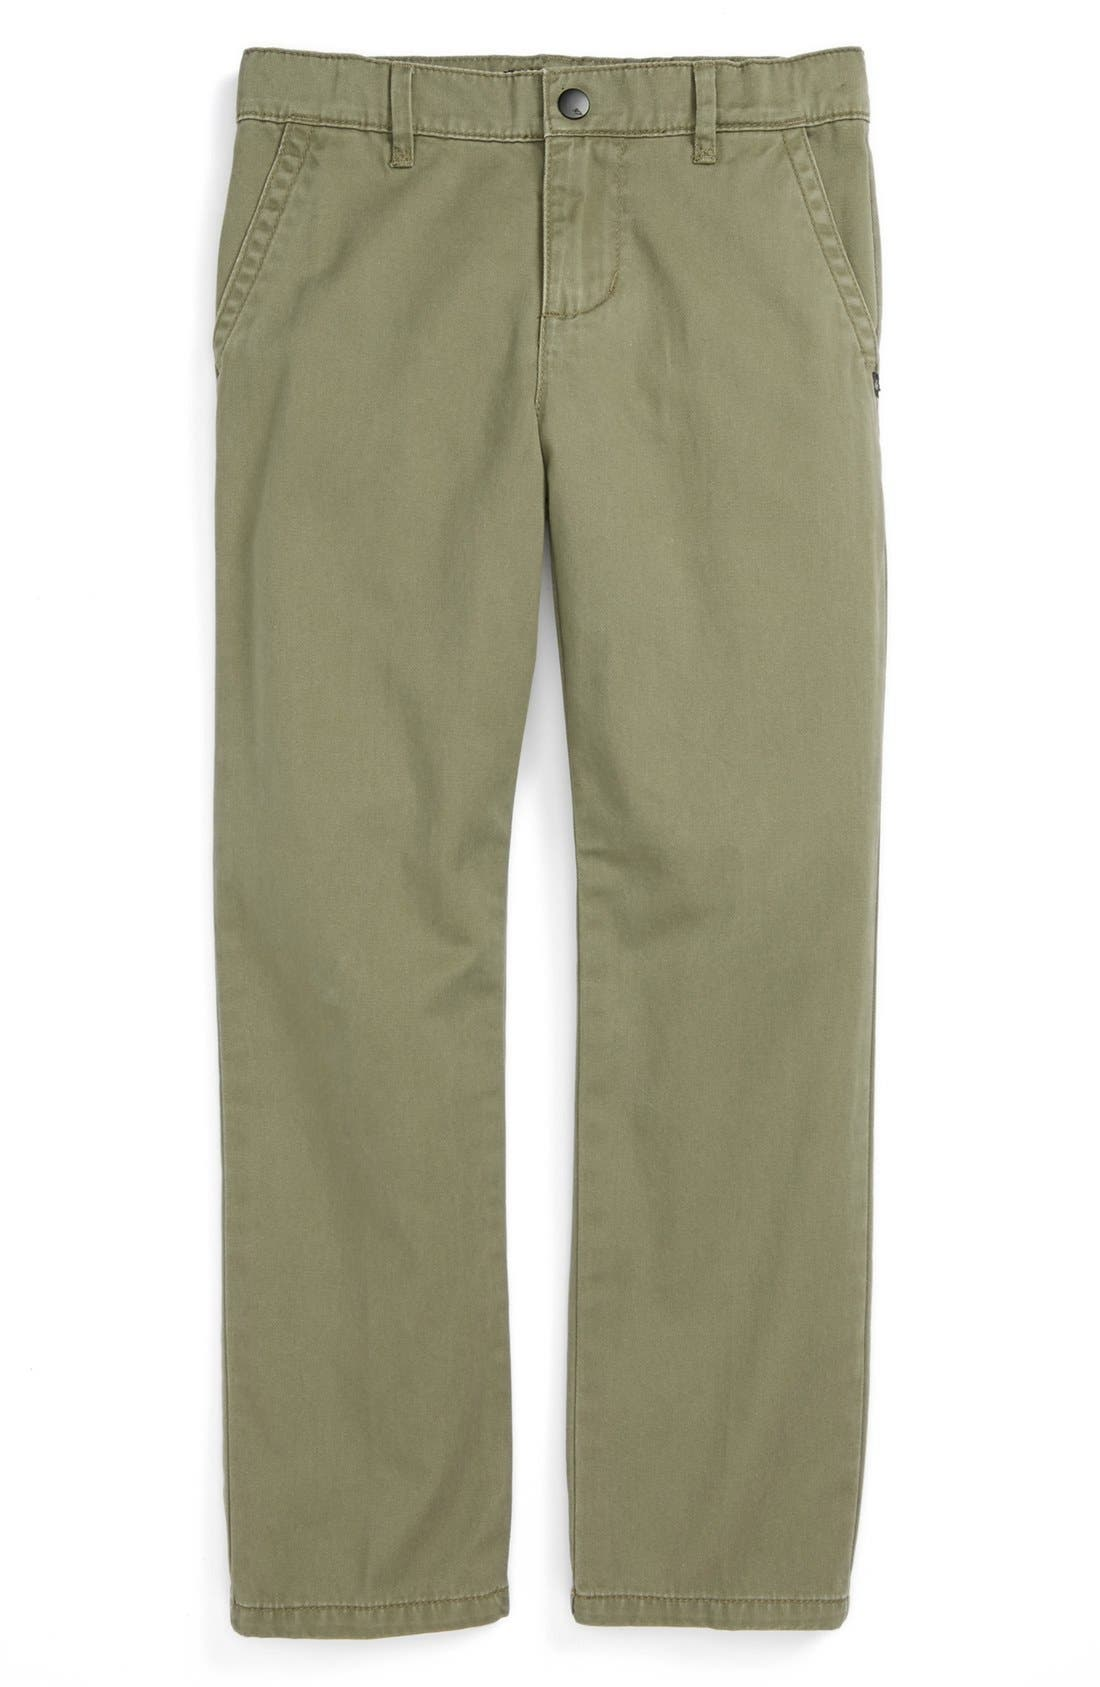 Alternate Image 1 Selected - Quiksilver 'Box Car' Chinos (Little Boys)